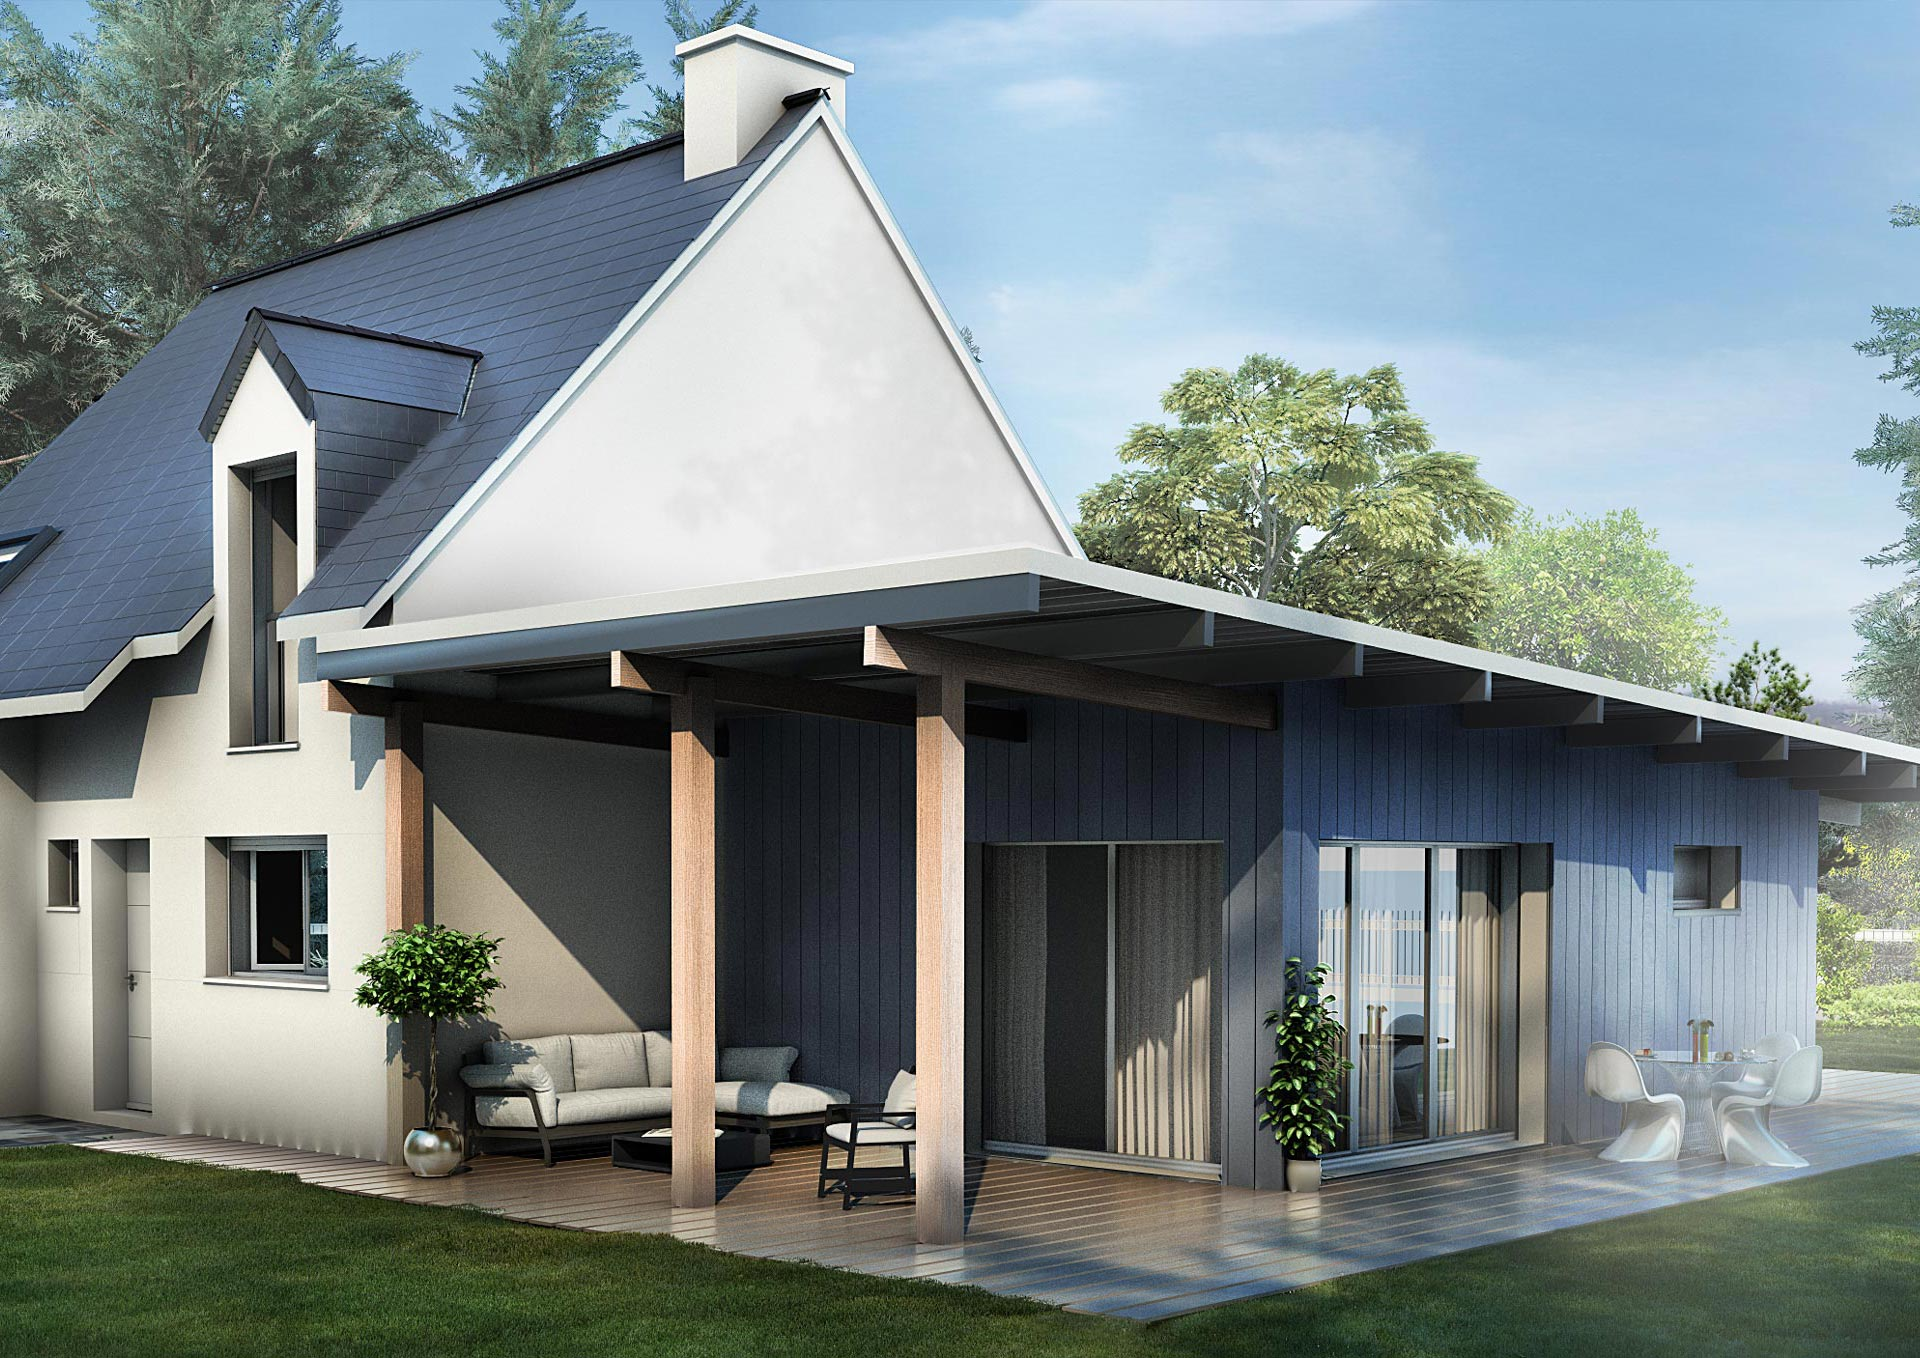 Extension design maison with extension design maison for Extension maison